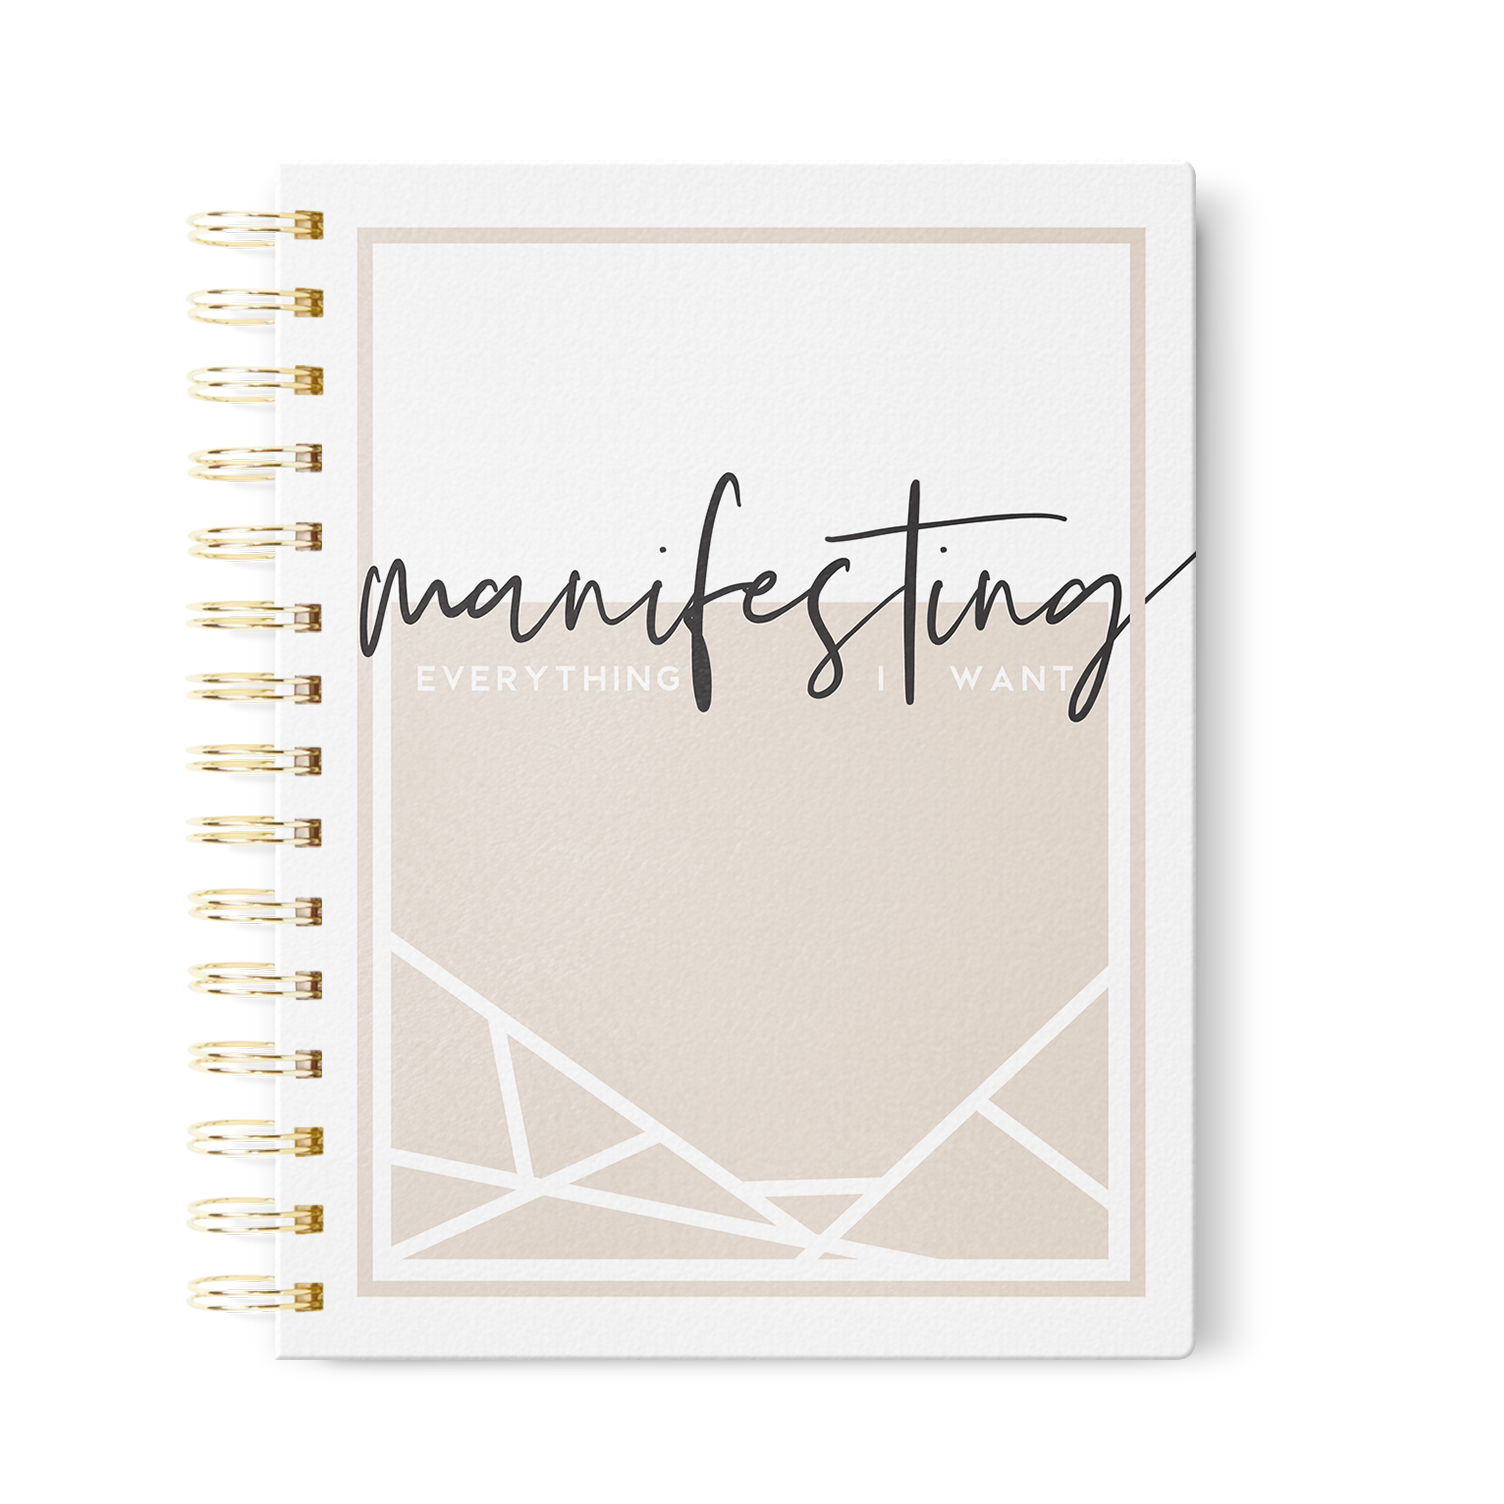 Manifesting Everything I Want Journal   in Dot Grid, Lined or Blank